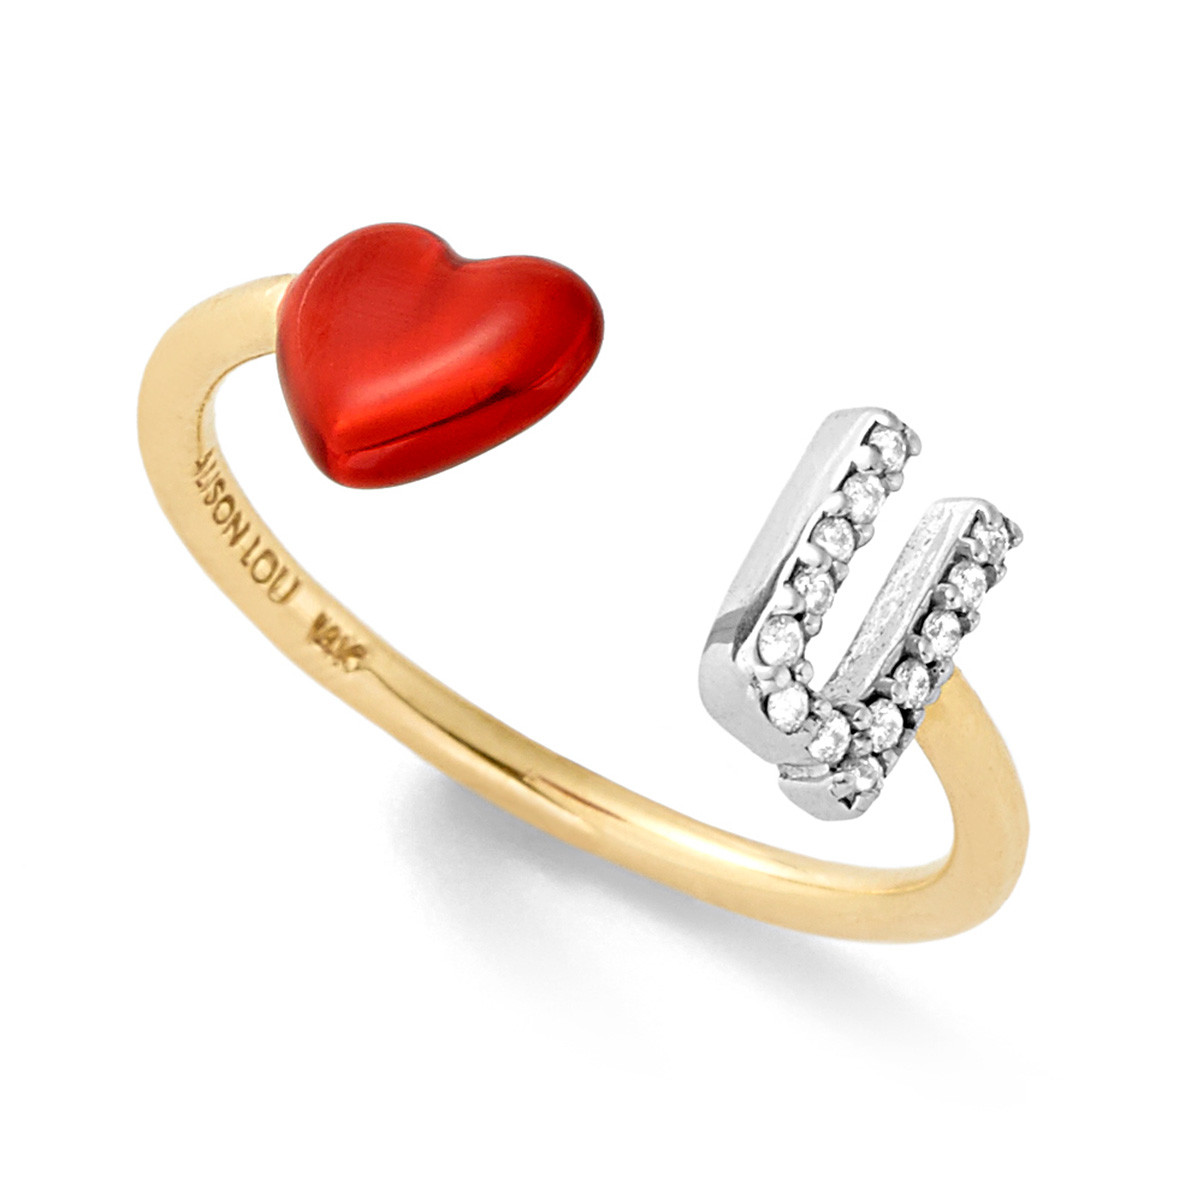 How Much Should You Really Spend On An Engagement Ring Source 21 Rings Affordable For Brides A Budget